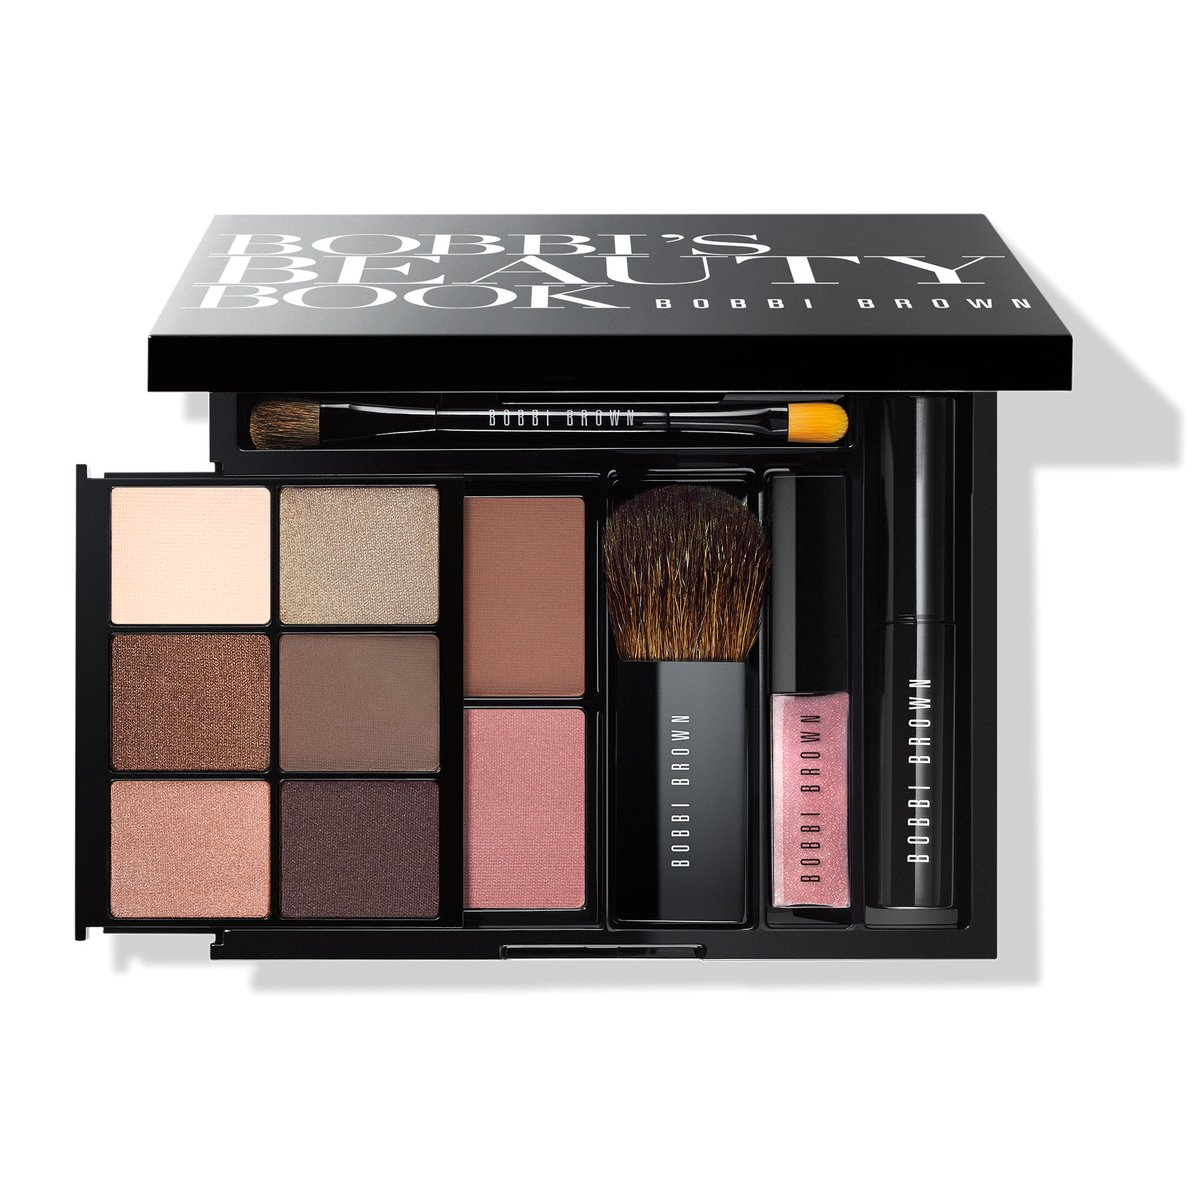 Bobbibrown Cosmetics On Twitter One Palette Endless Combinations Meet Bobbi S Beauty Book Now Exclusively At Nordstrom Https T Co Enthkytowo